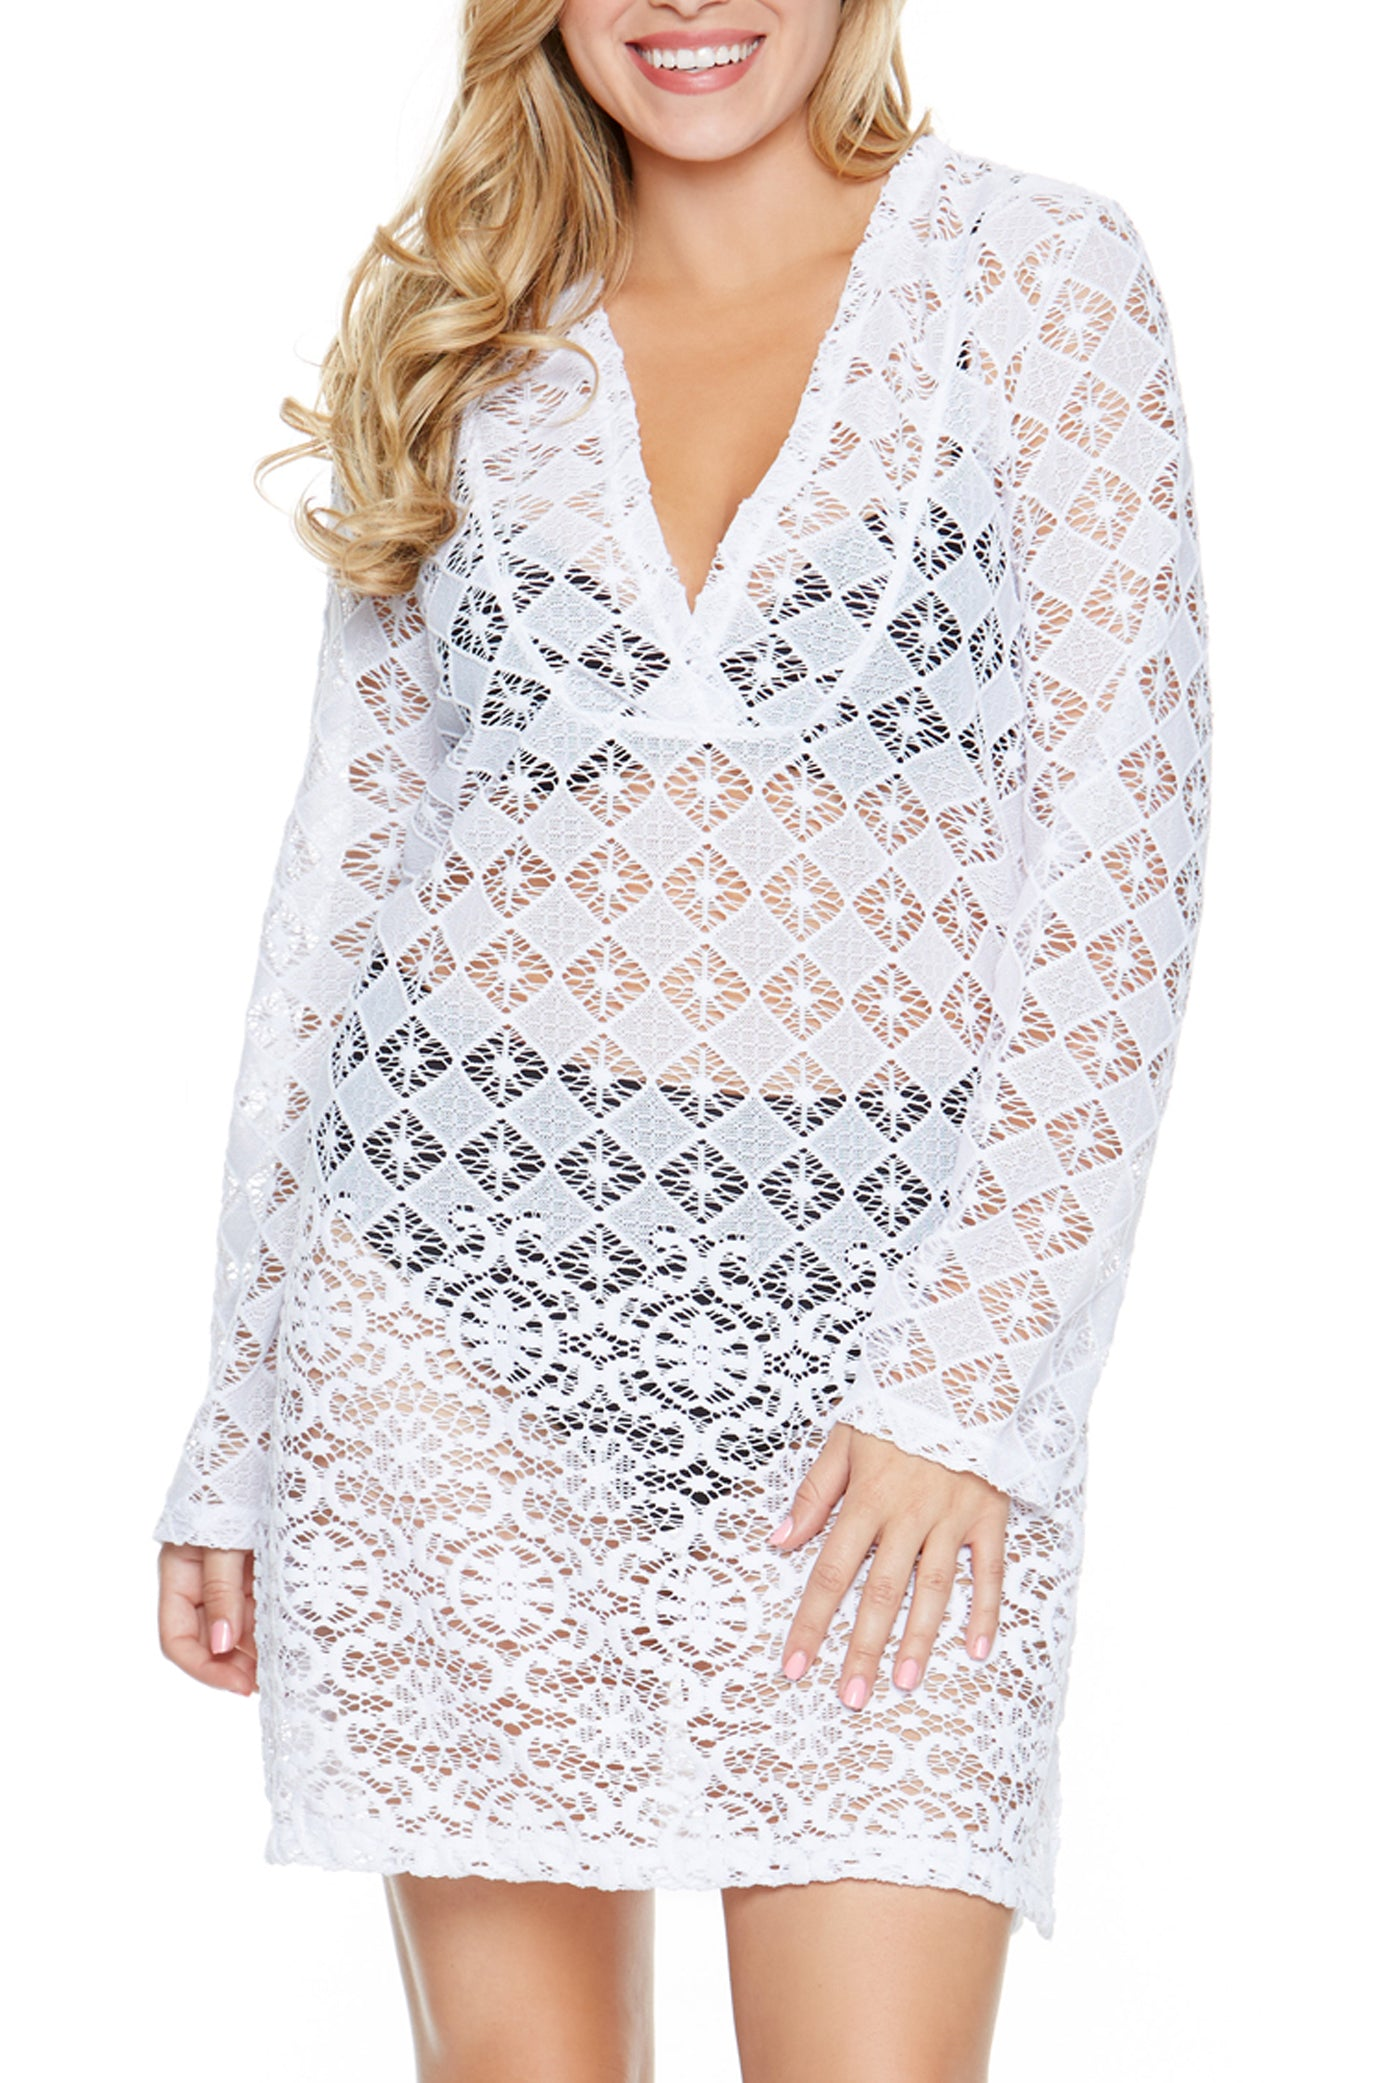 V-neckline Allover sheer crochet Hits at thigh Polyester Hand wash